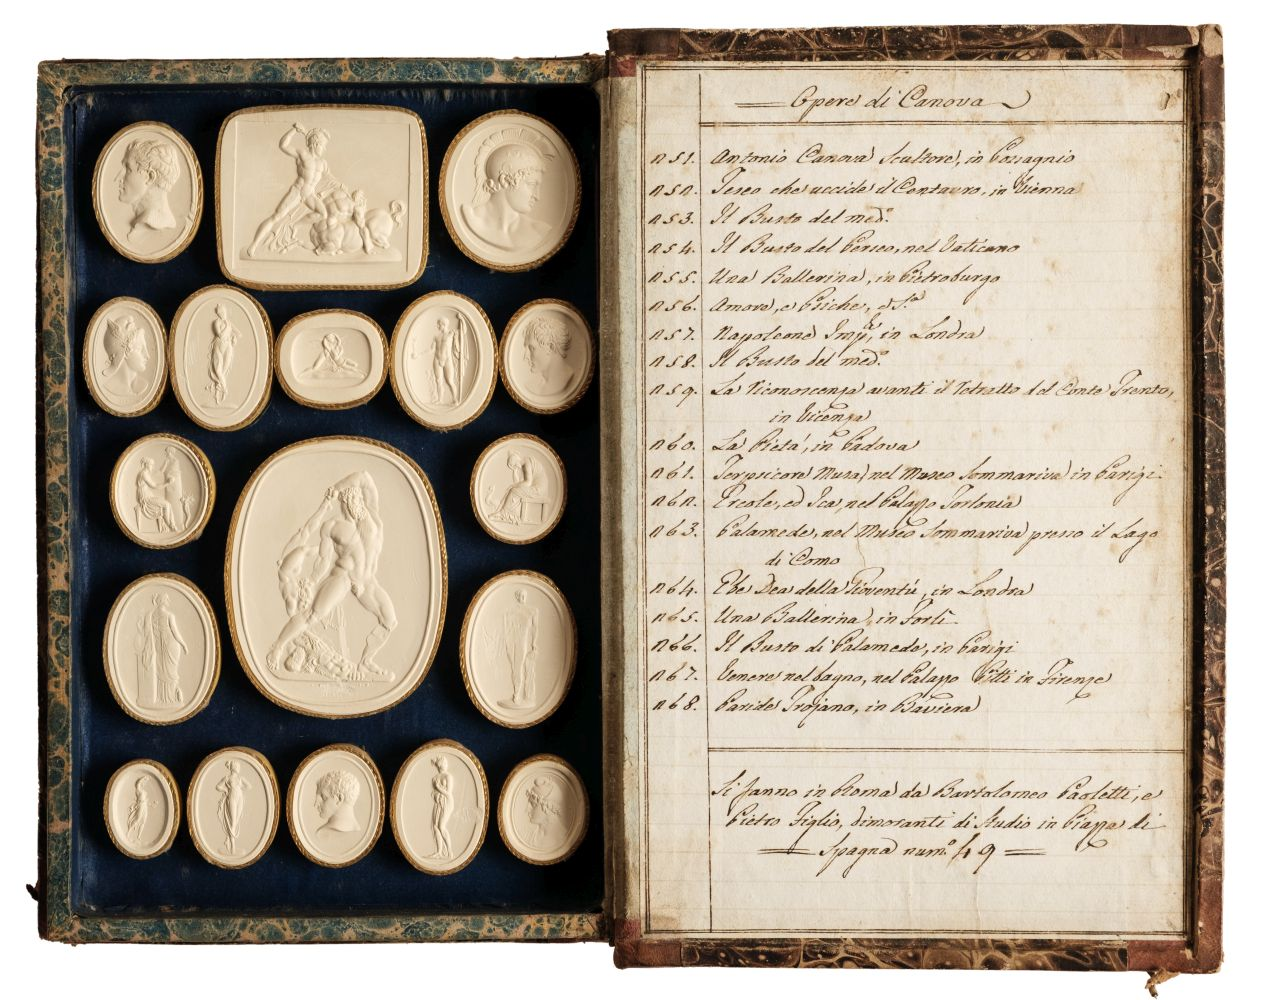 Paoletti (Bartolomeo and Pietro). A collection of 300 plaster cameos, 1820 - Image 2 of 16